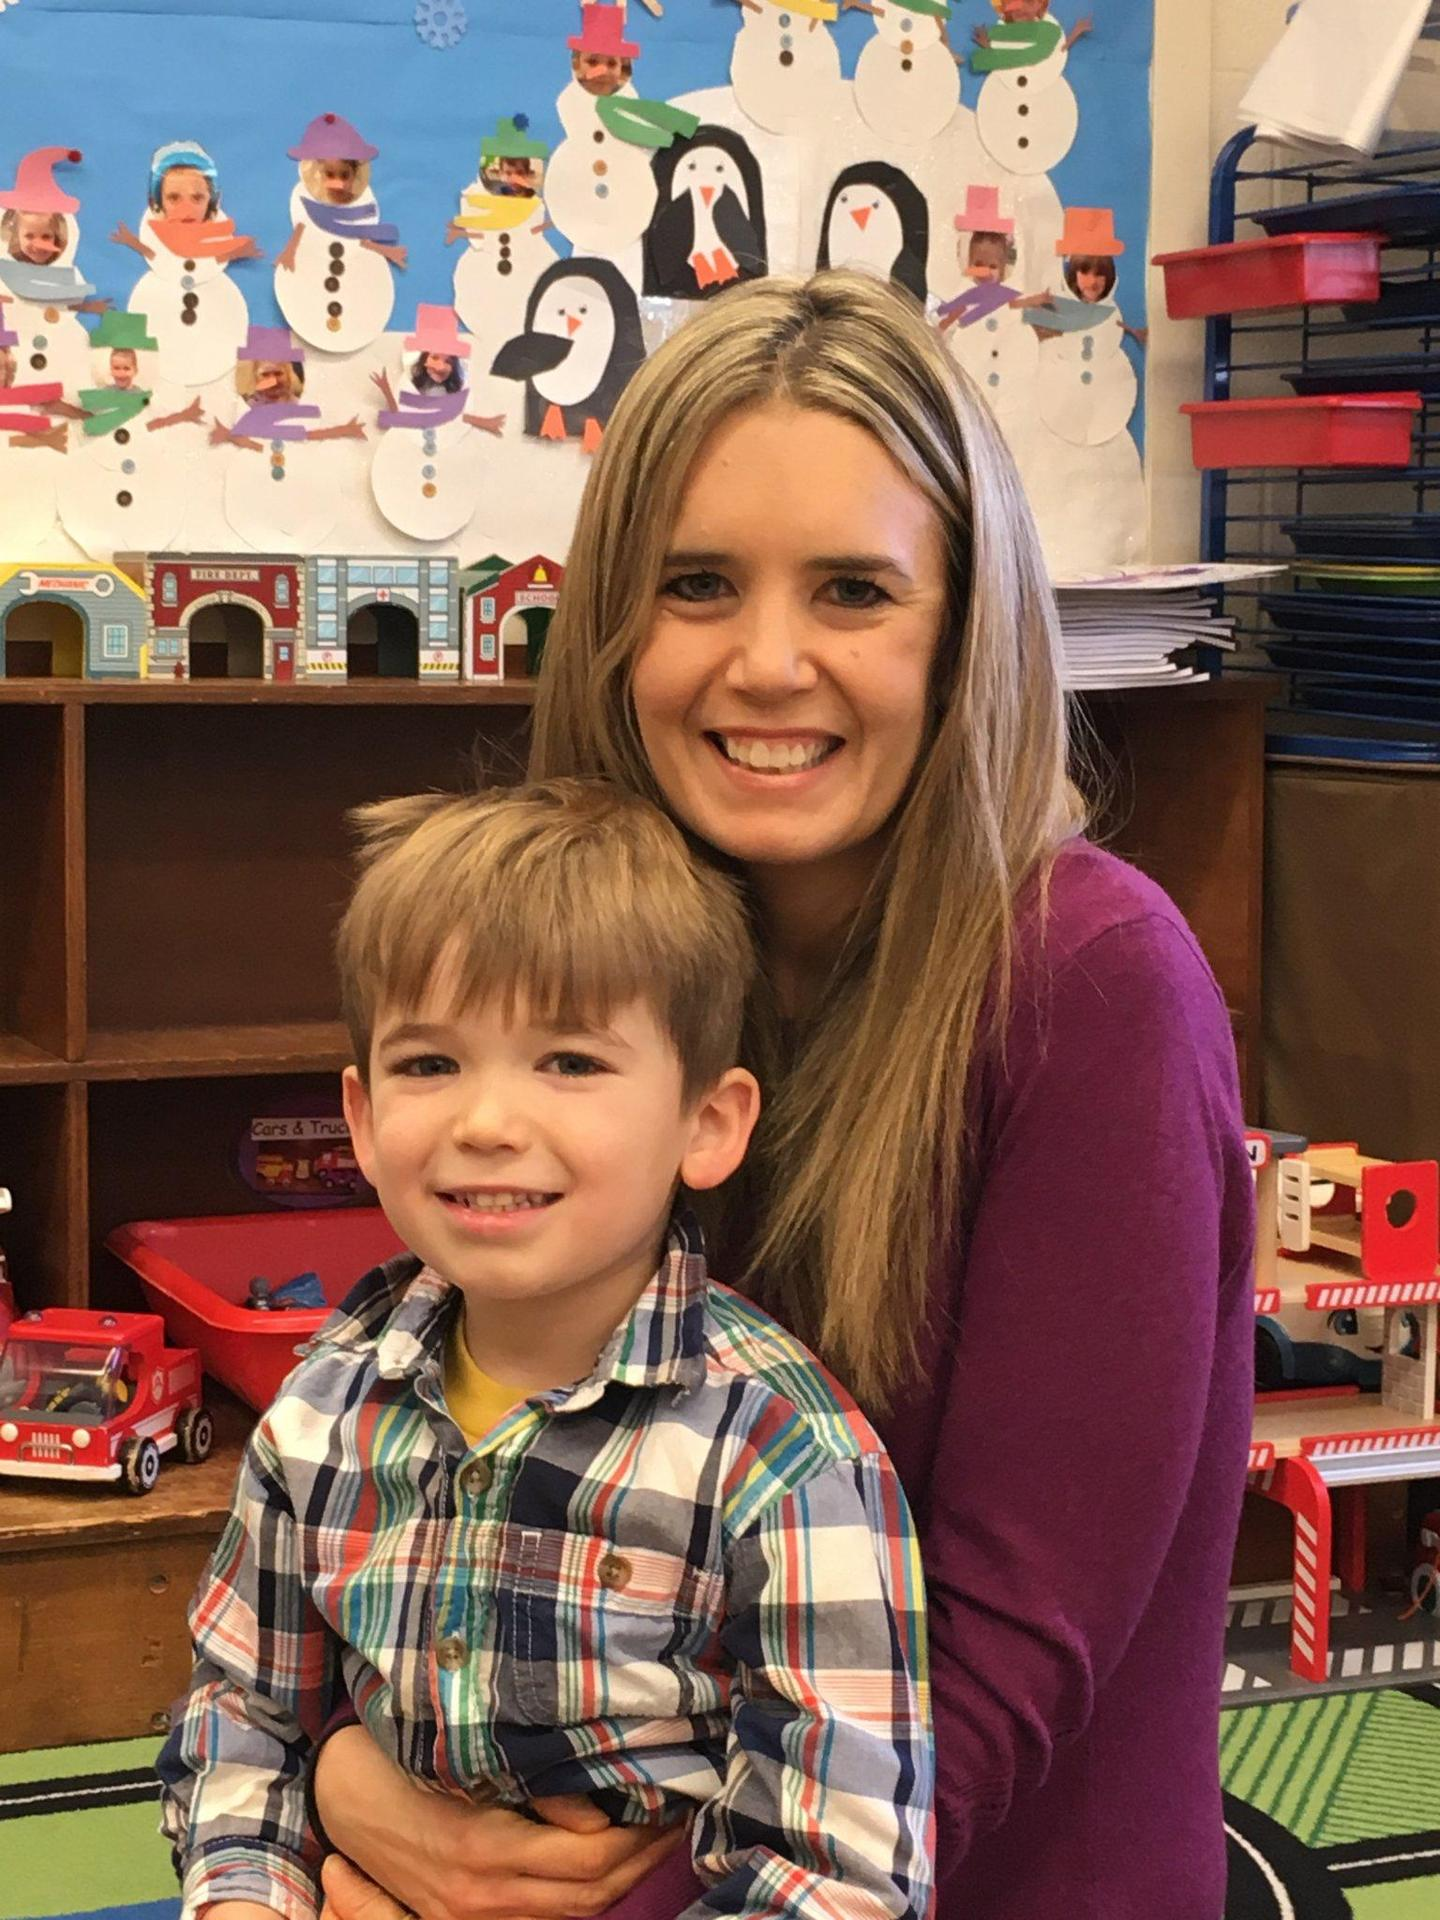 Mrs. Forcucci and my son, Chase